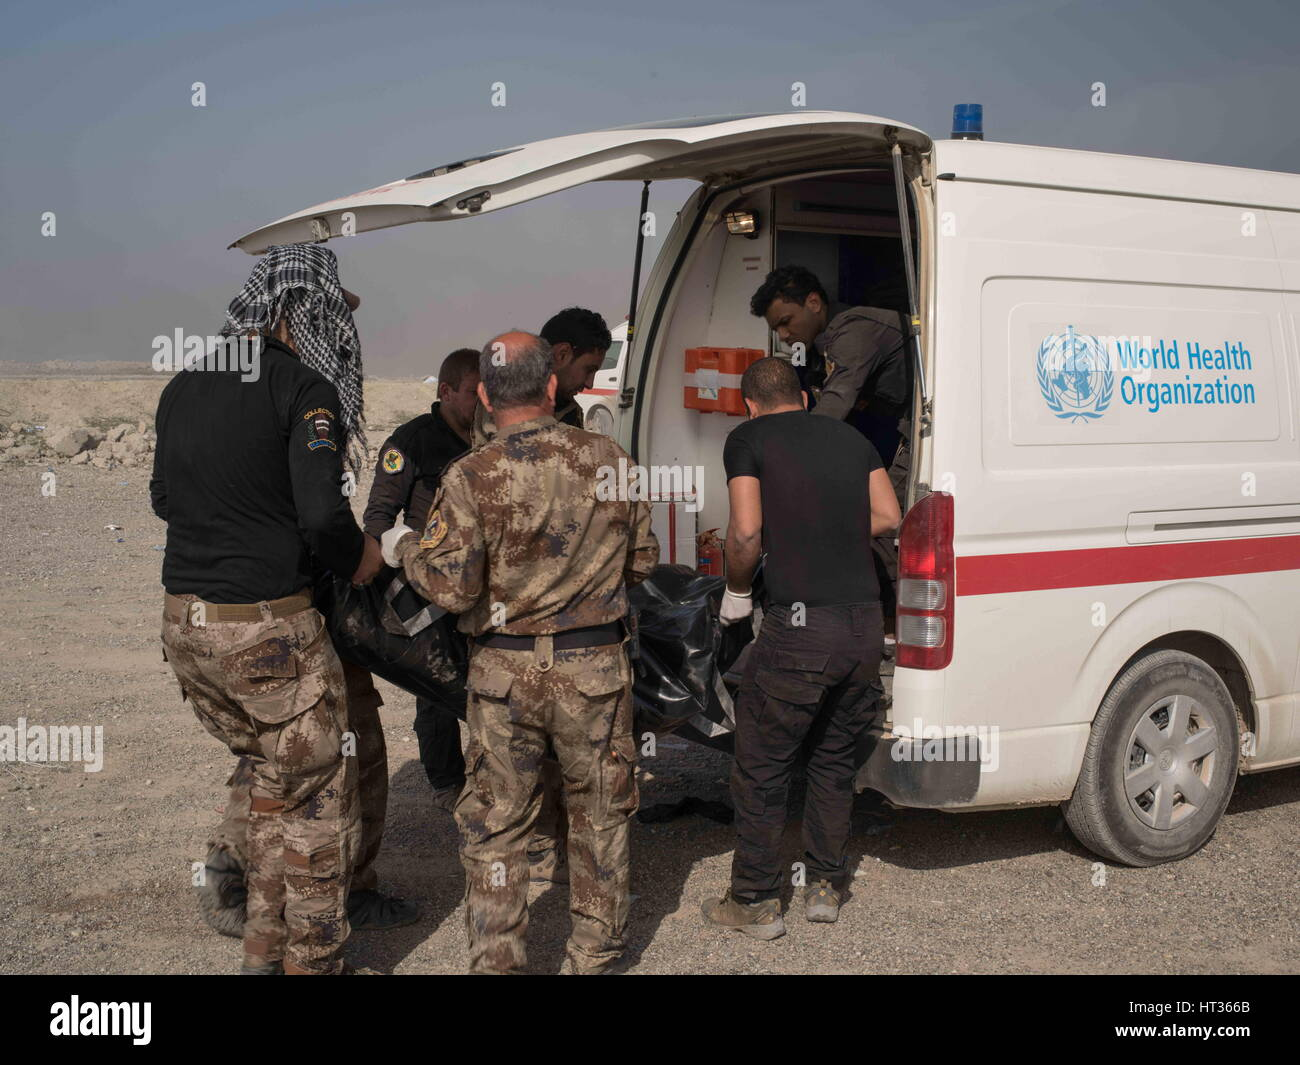 Mosul nineveh iraq 1st mar 2017 iraqi special forces medic mosul nineveh iraq 1st mar 2017 iraqi special forces medic load the body of a soldier killed in action into an ambulance at a division aid station in publicscrutiny Gallery